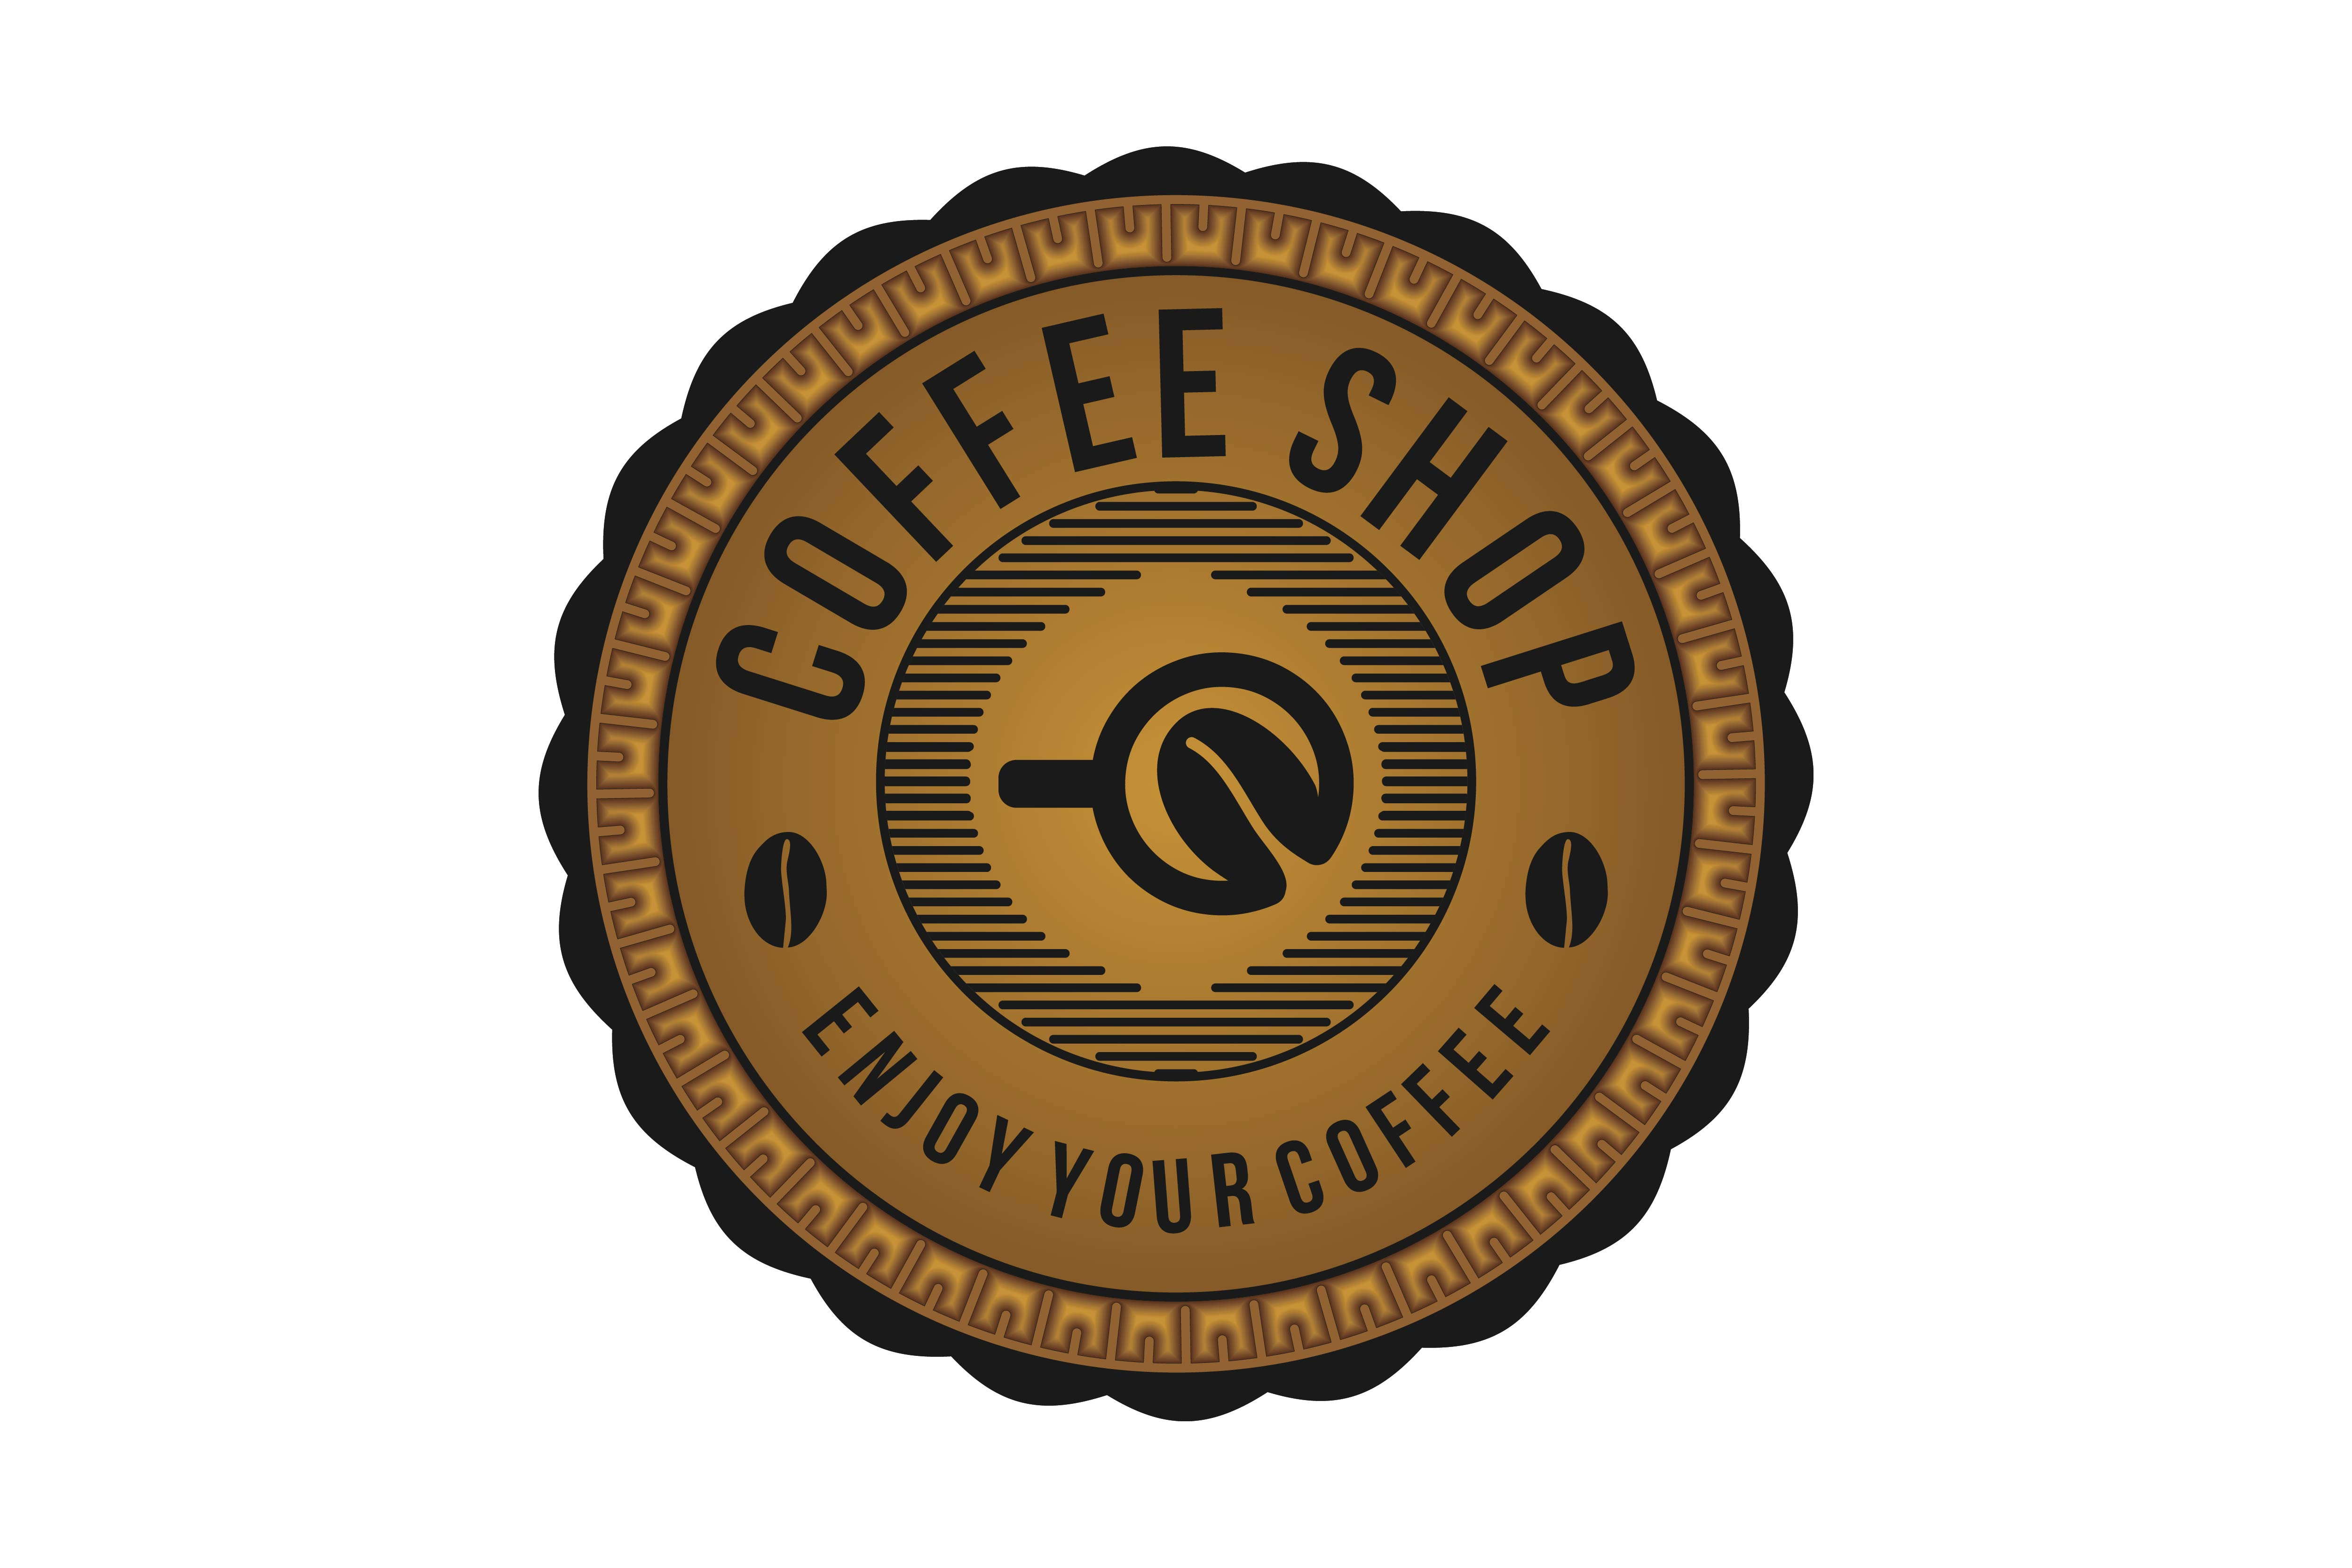 Download Free Coffee Shop Badge Logo Designs Inspiration Vector Illustration for Cricut Explore, Silhouette and other cutting machines.